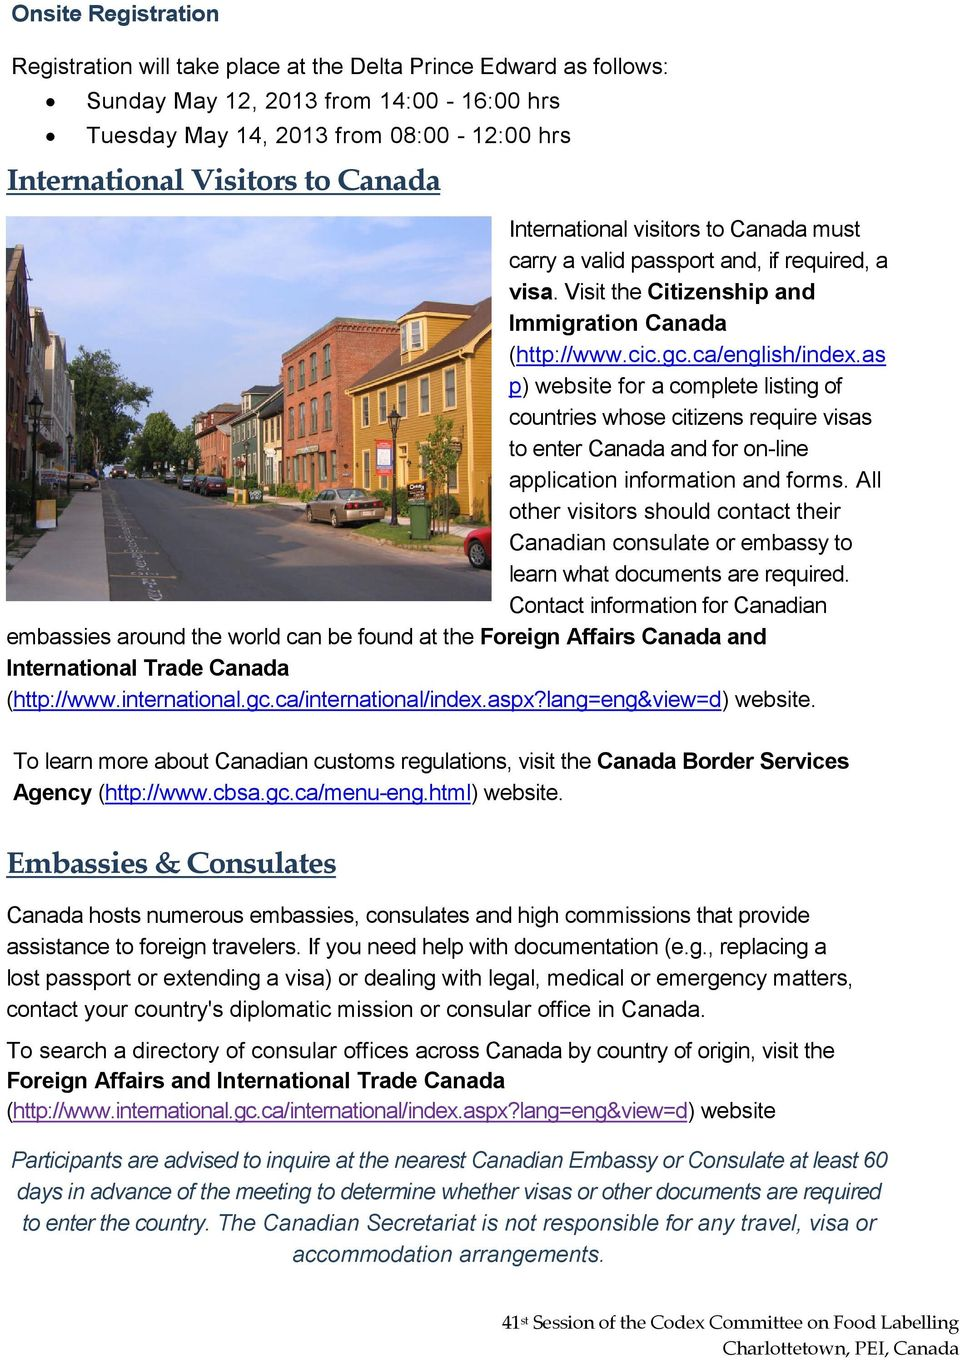 as p) website for a complete listing of countries whose citizens require visas to enter Canada and for on-line application information and forms.